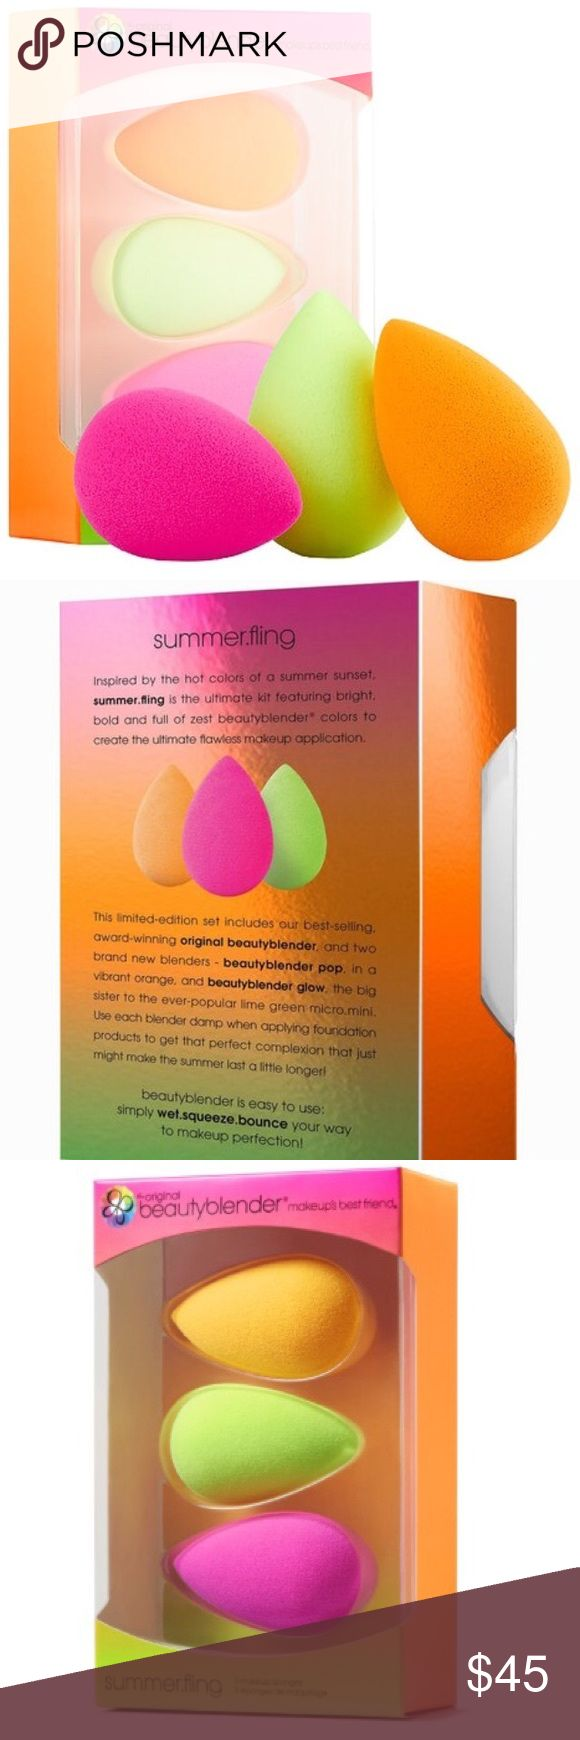 NIB: Beauty Blender Summer Fling Set NIB. Never opened the box. Includes three full size Beauty Blenders in pink, green, and orange. Great way to stock up and save! Smoke free home. Reasonable offers please. No trades Sephora Makeup Brushes & Tools